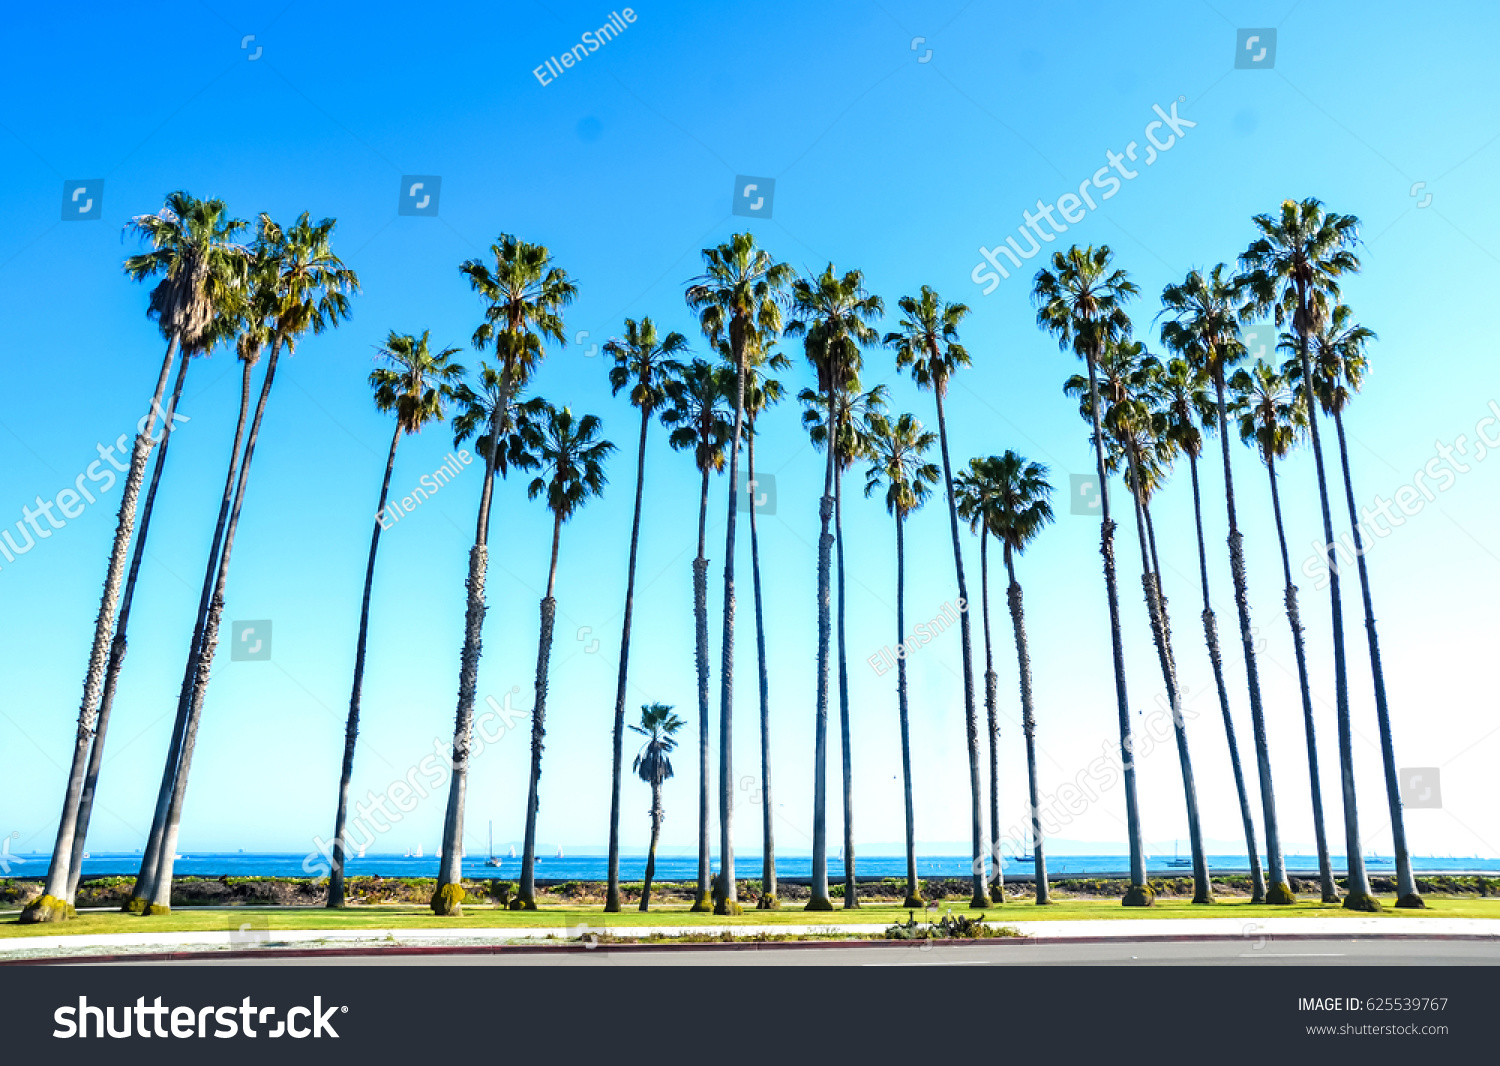 California Hight Palm Trees On The Beach Near Ocean Blue Sky Background Santa